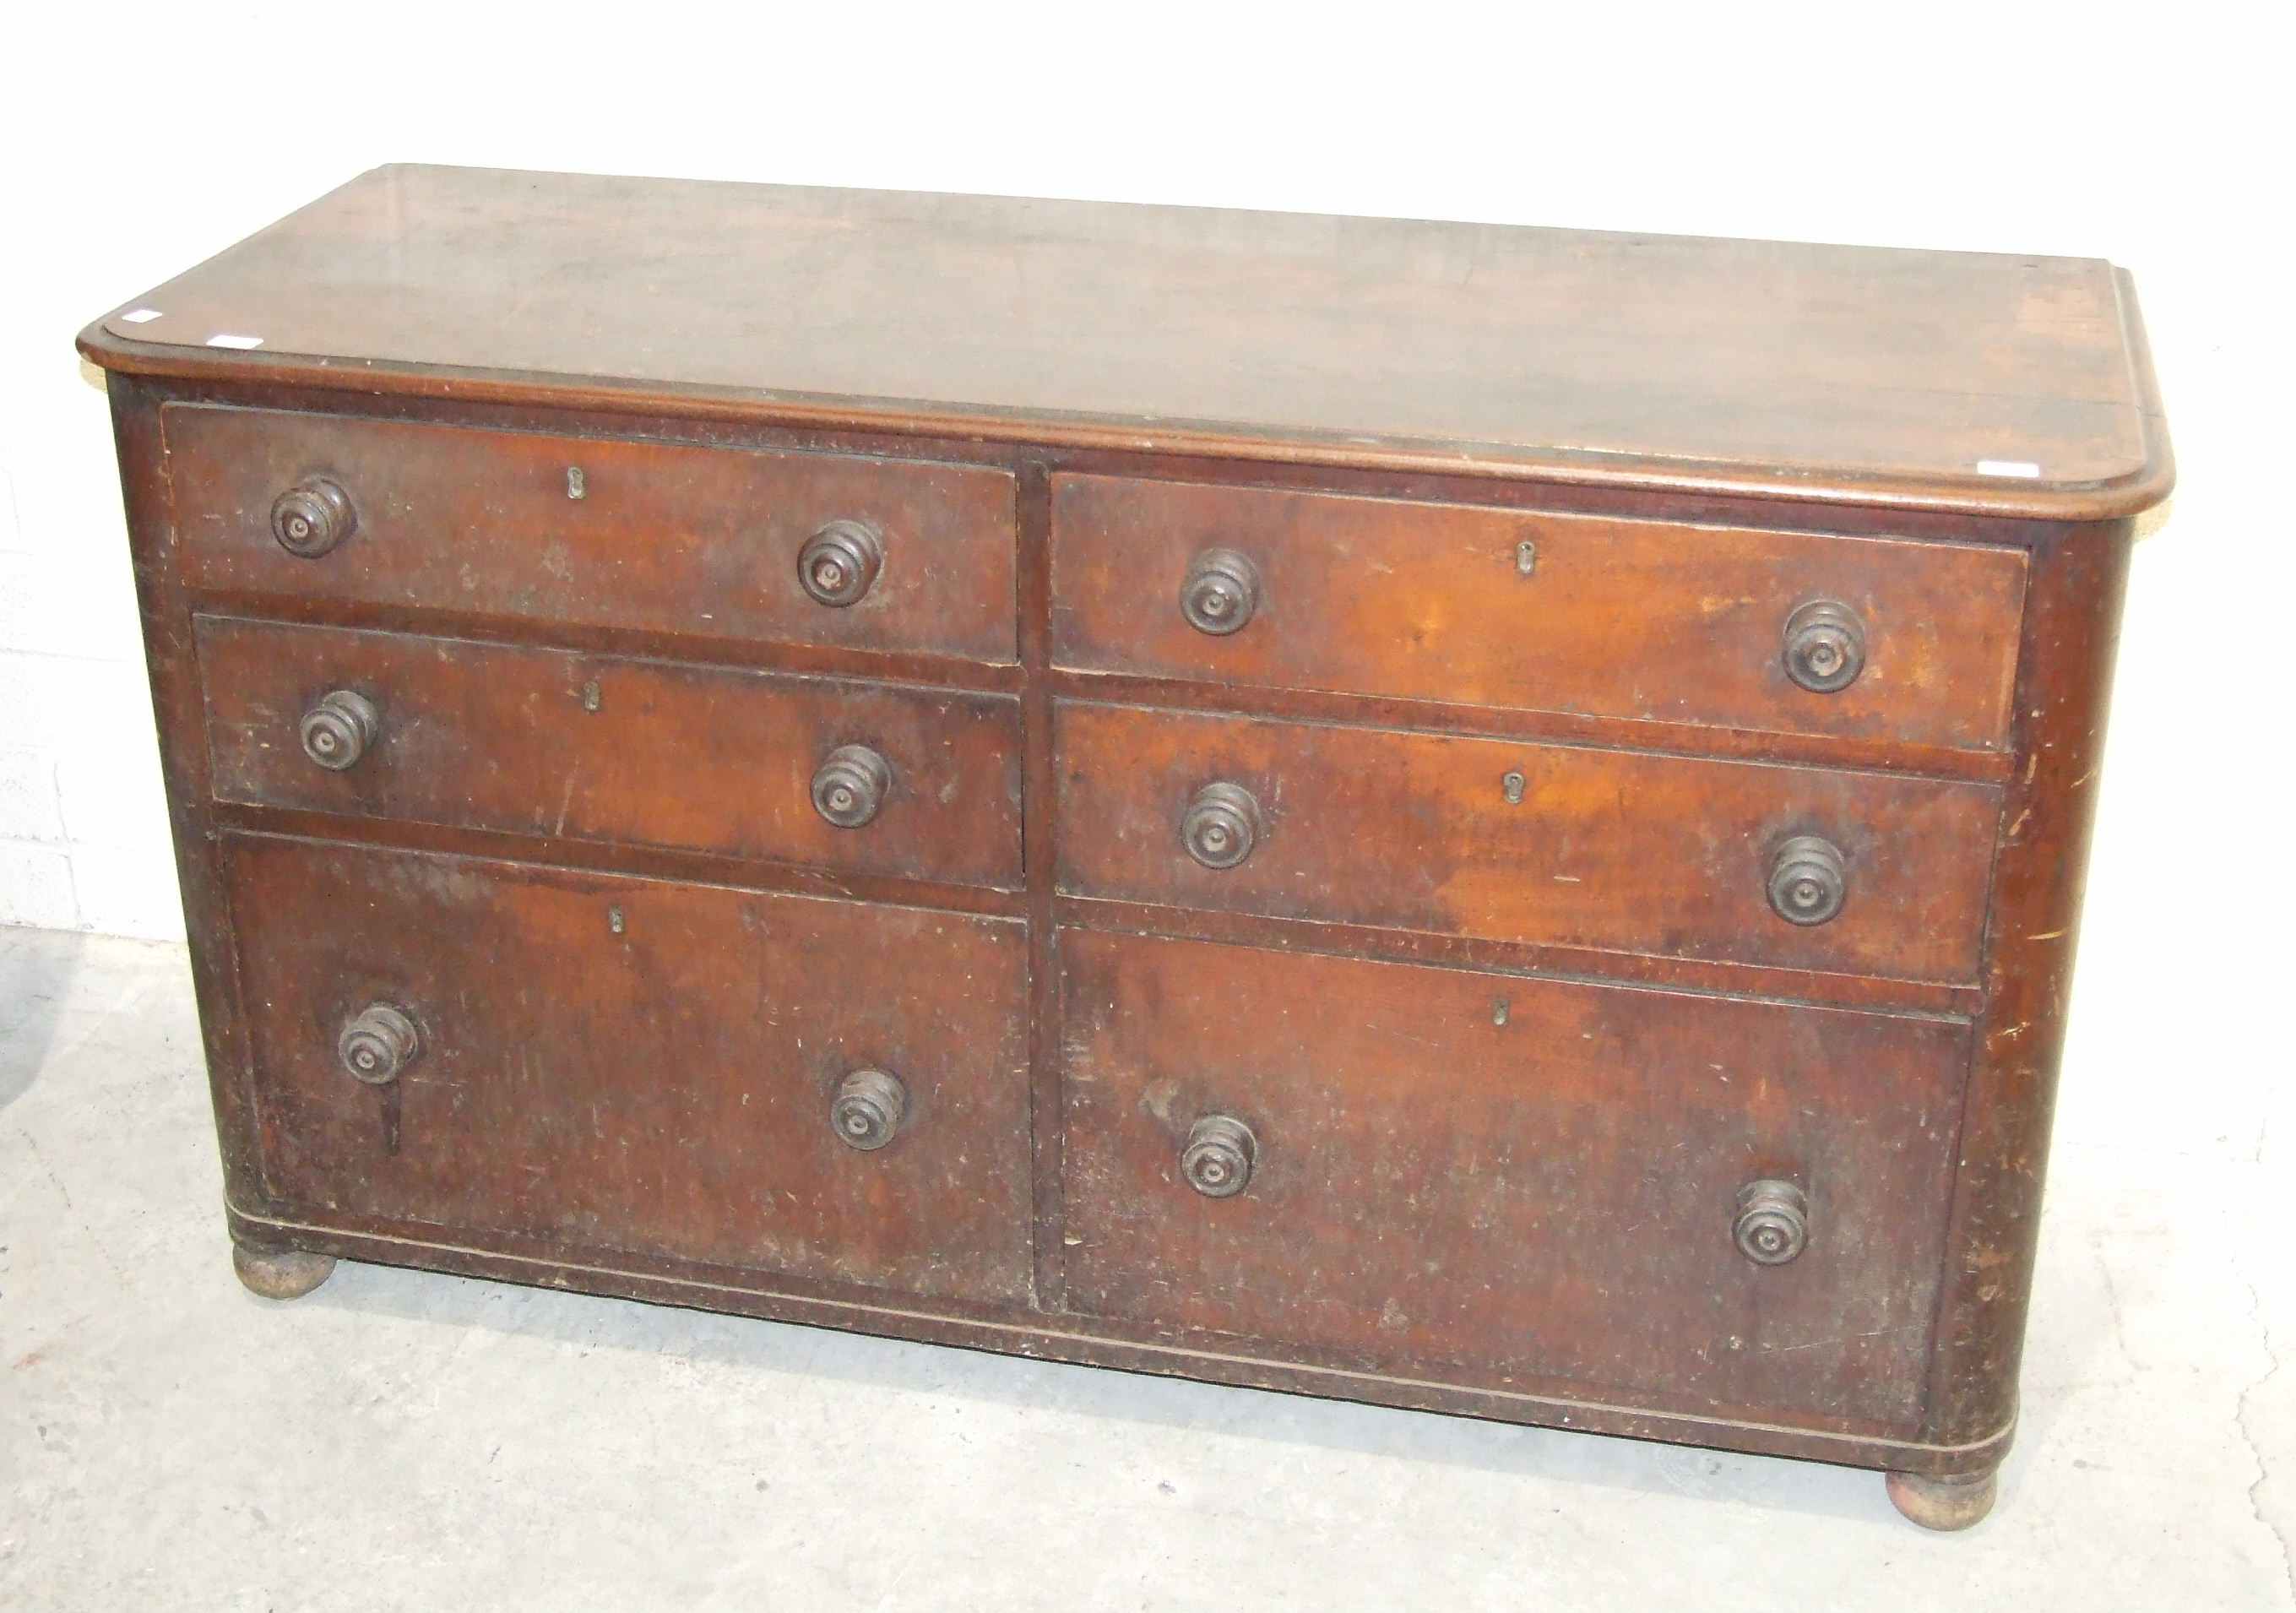 Lot 70 - An early 19th century mahogany storage chest of six graduated drawers in two banks with turned